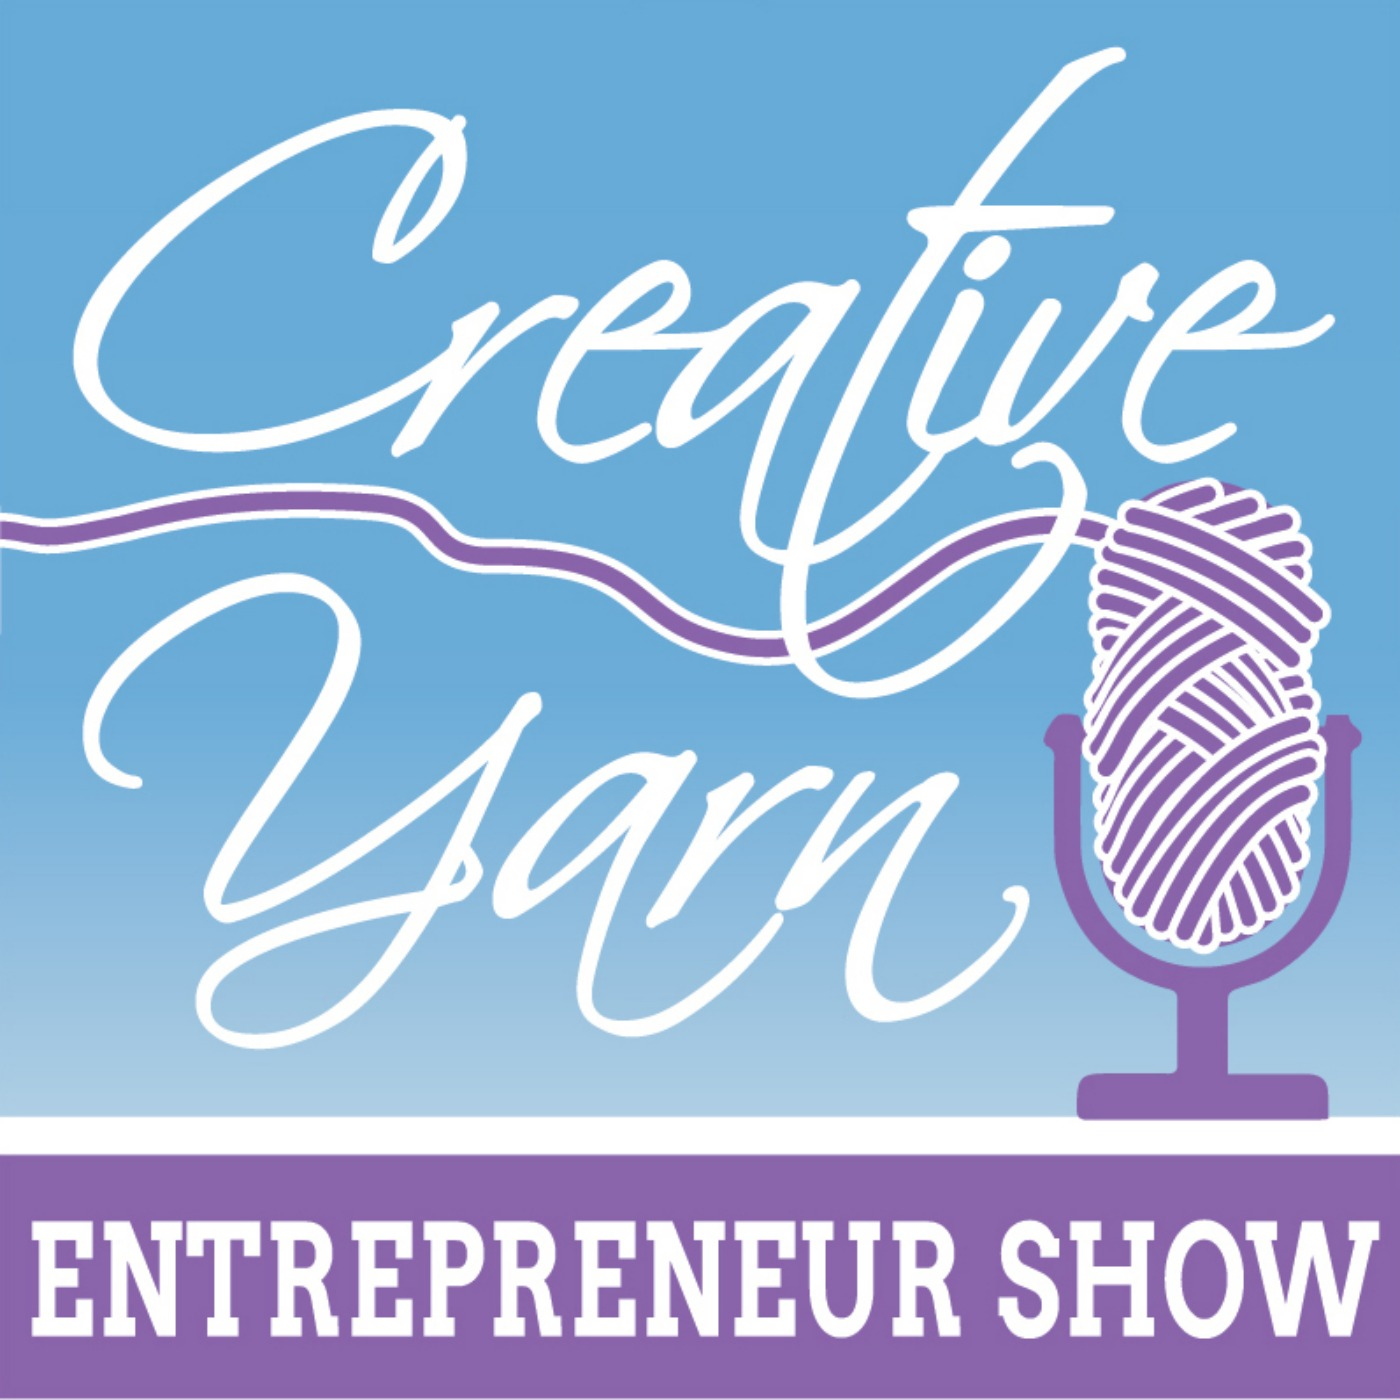 Announcing a podcast mini series on designing and self-publishing your crochet & knitting patterns! - The Creative Yarn Entrepreneur Show